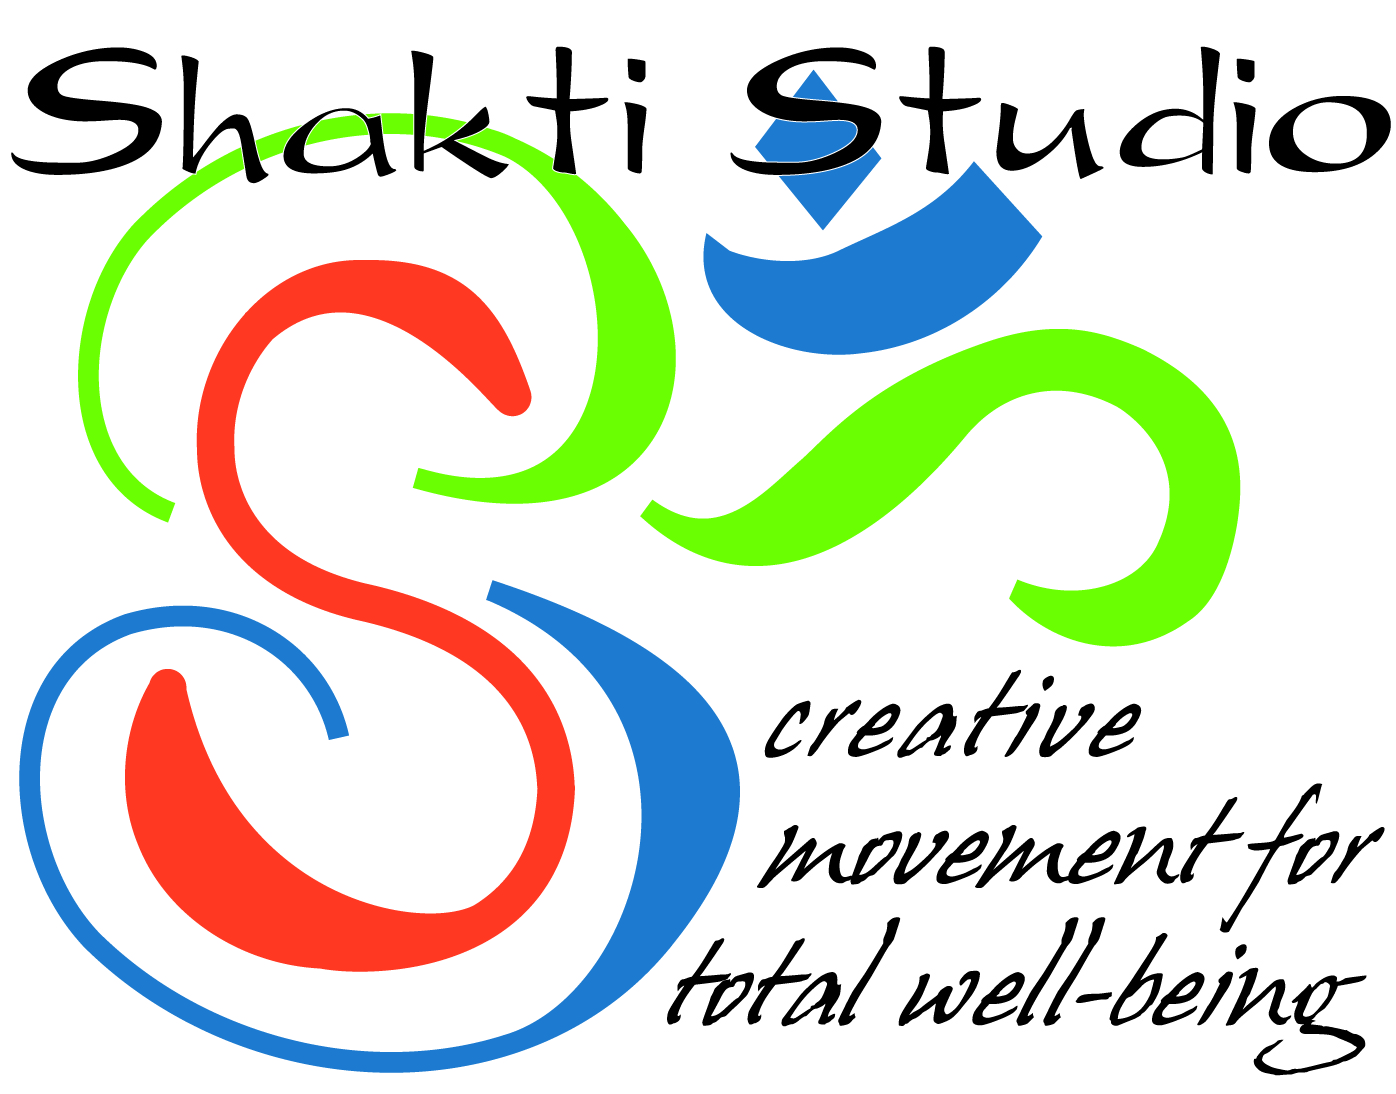 http://shaktistudiomd.files.wordpress.com/2012/03/shakti-studio-logo-040210.jpg